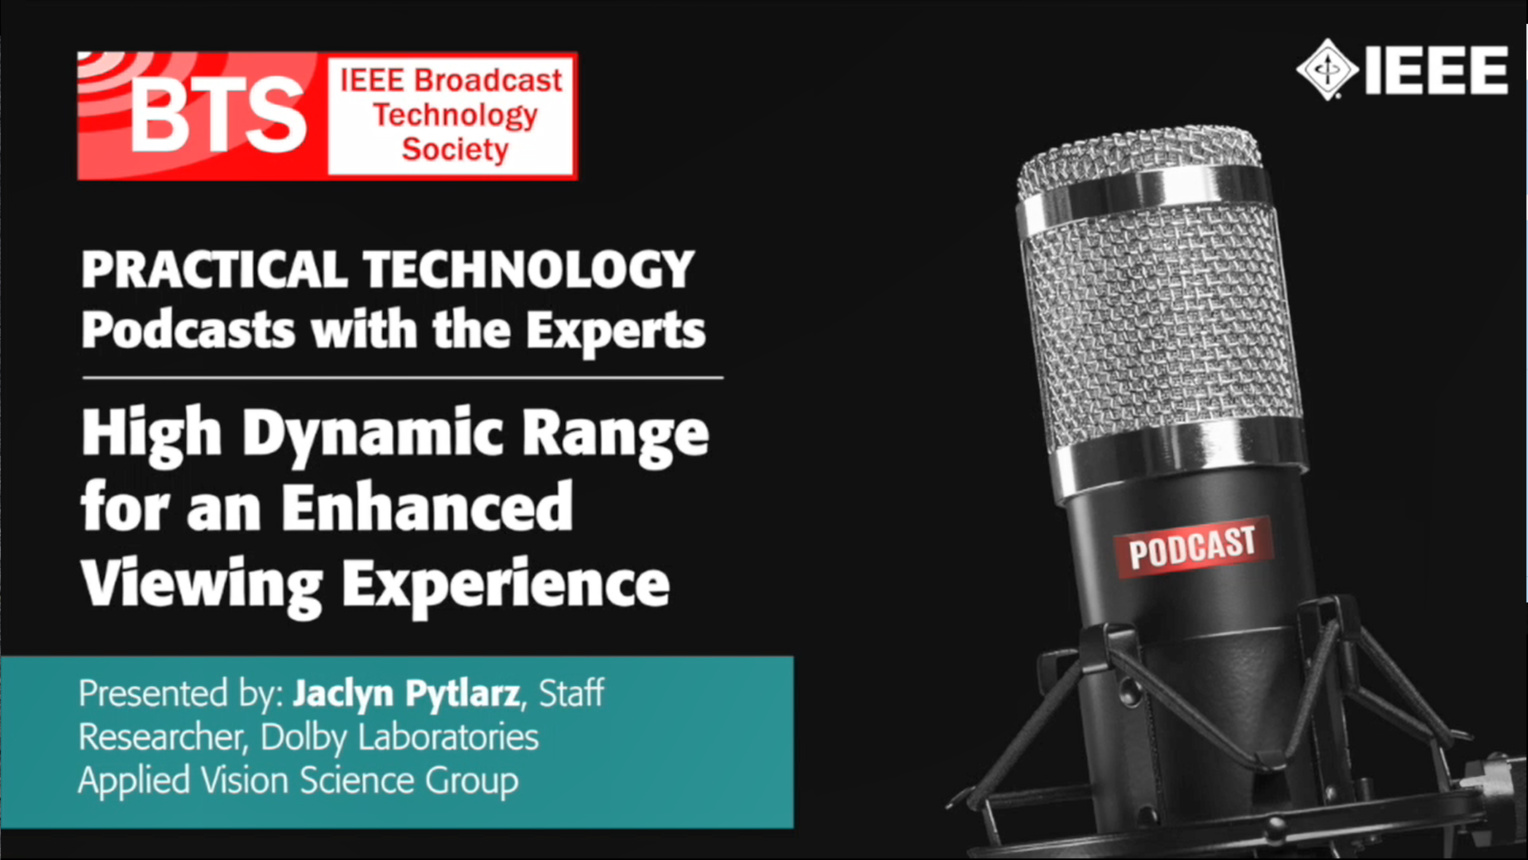 Q&A with Jacyln Pytlarz: IEEE BTS Podcasts, Episode 1